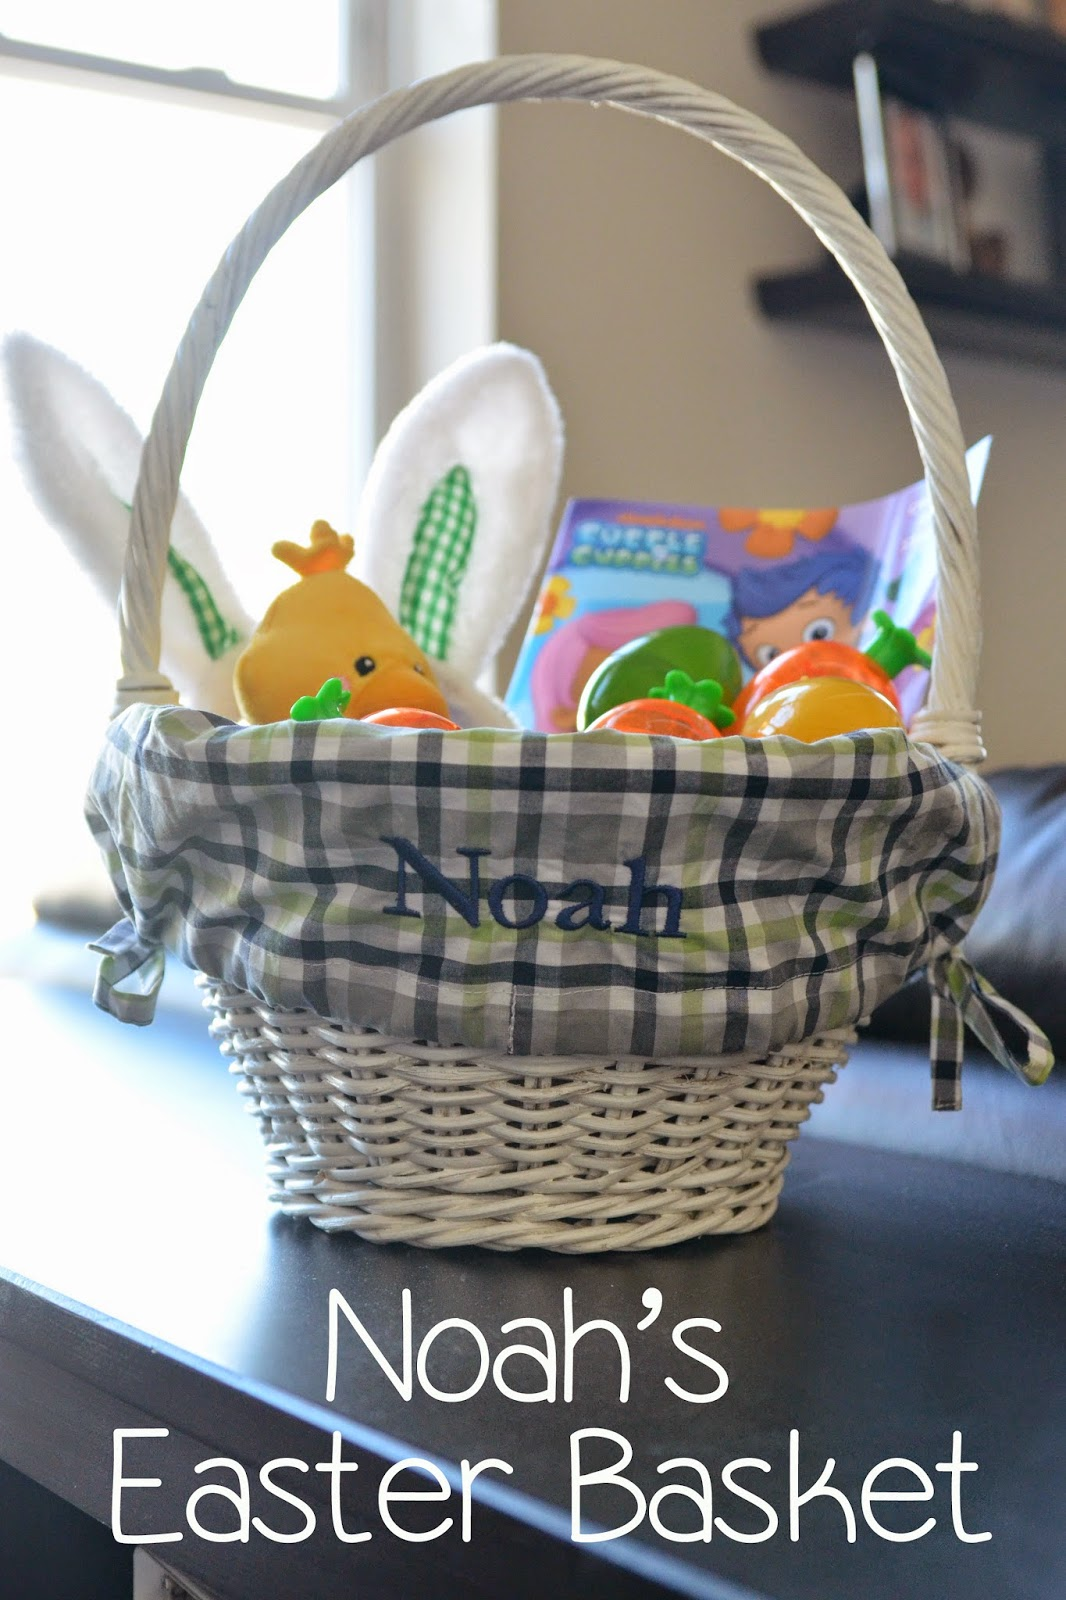 The adventure starts here noahs easter basket last year we celebrated noahs first easter both sets of grandparents got noah easter baskets filled with goodies since noah was only 4 12 months old negle